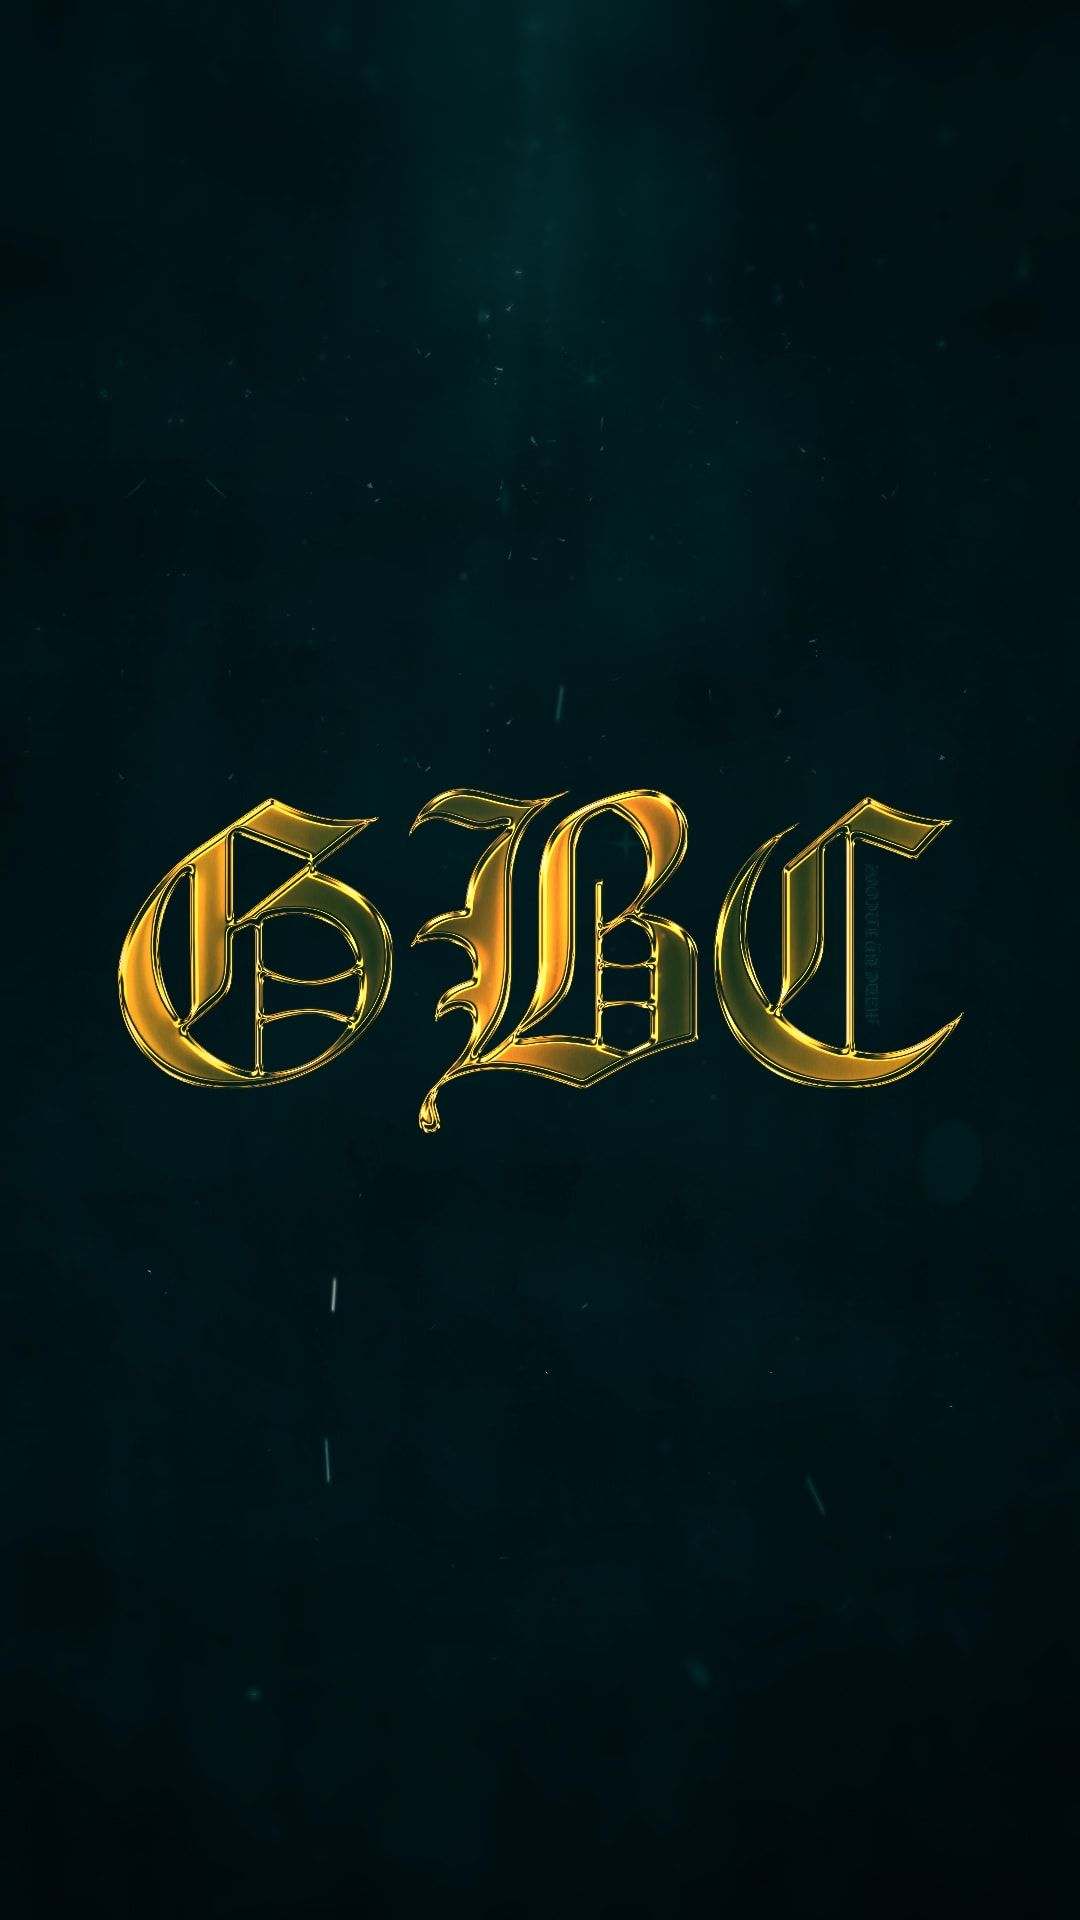 Gbc Wallpapers Top Free Gbc Backgrounds Wallpaperaccess